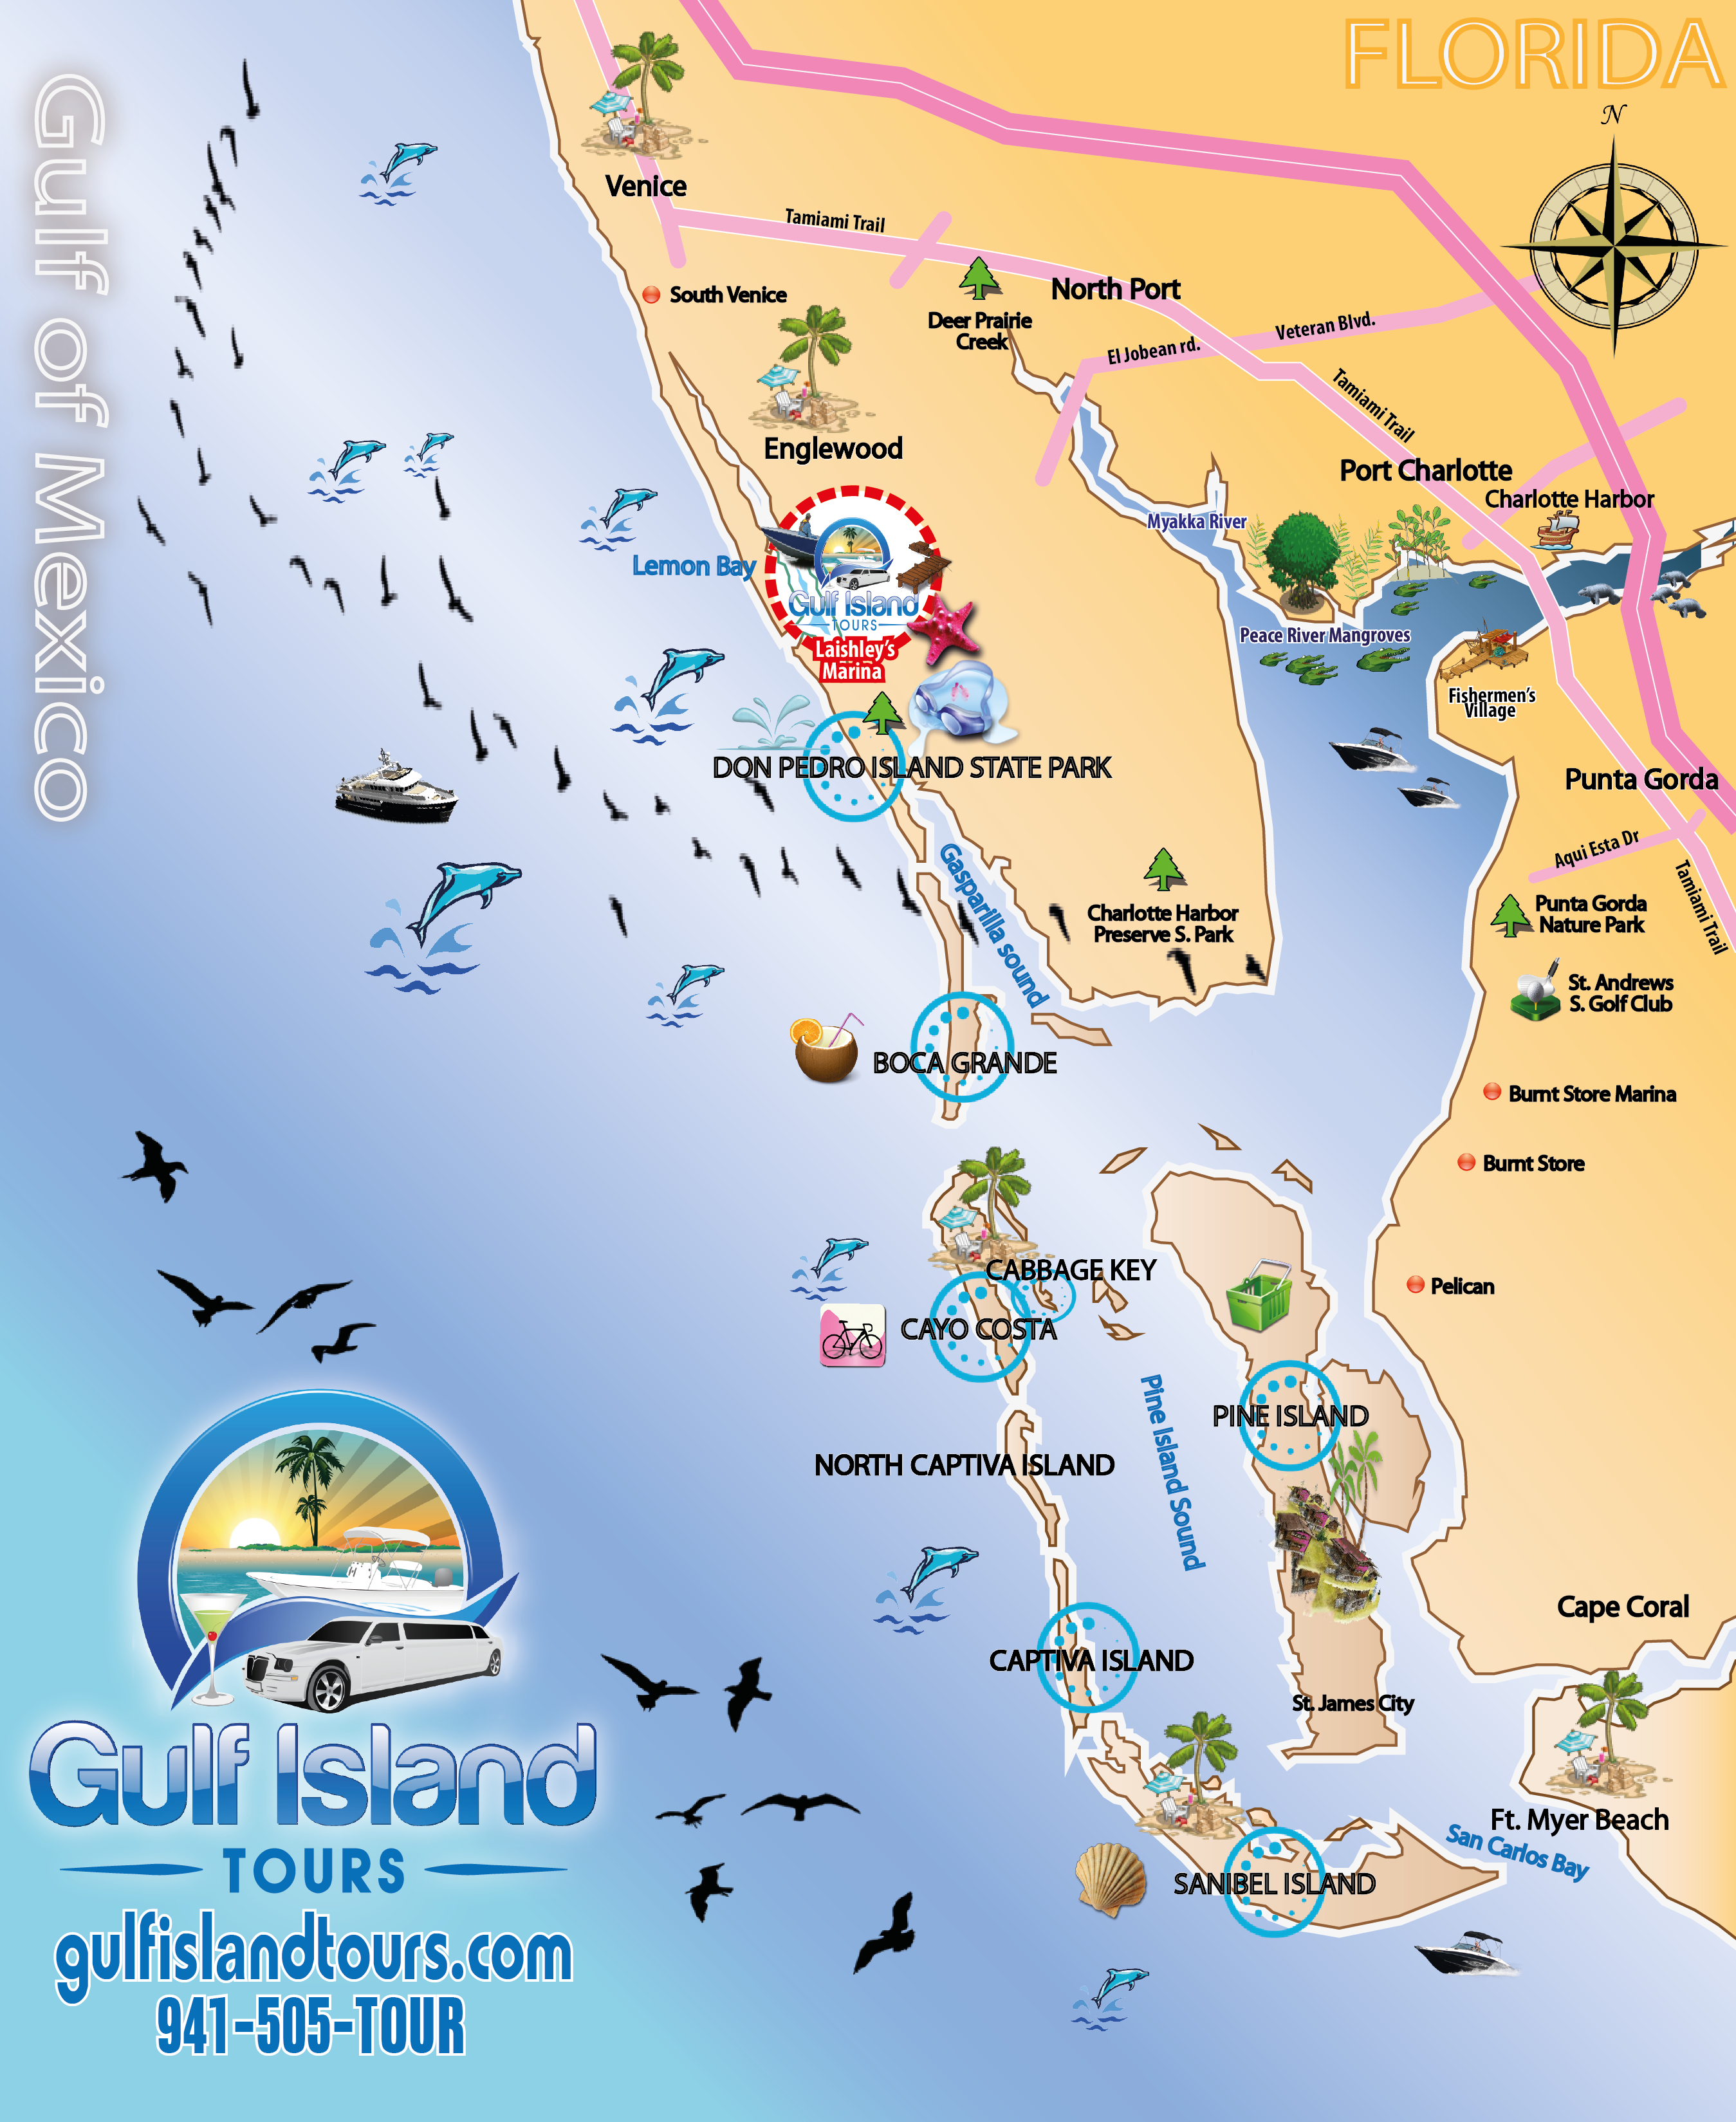 Boat Tours Englewood Fl - 941-505-8687 - Gulf Island Tours Offers - Where Is Sanibel Island In Florida Map